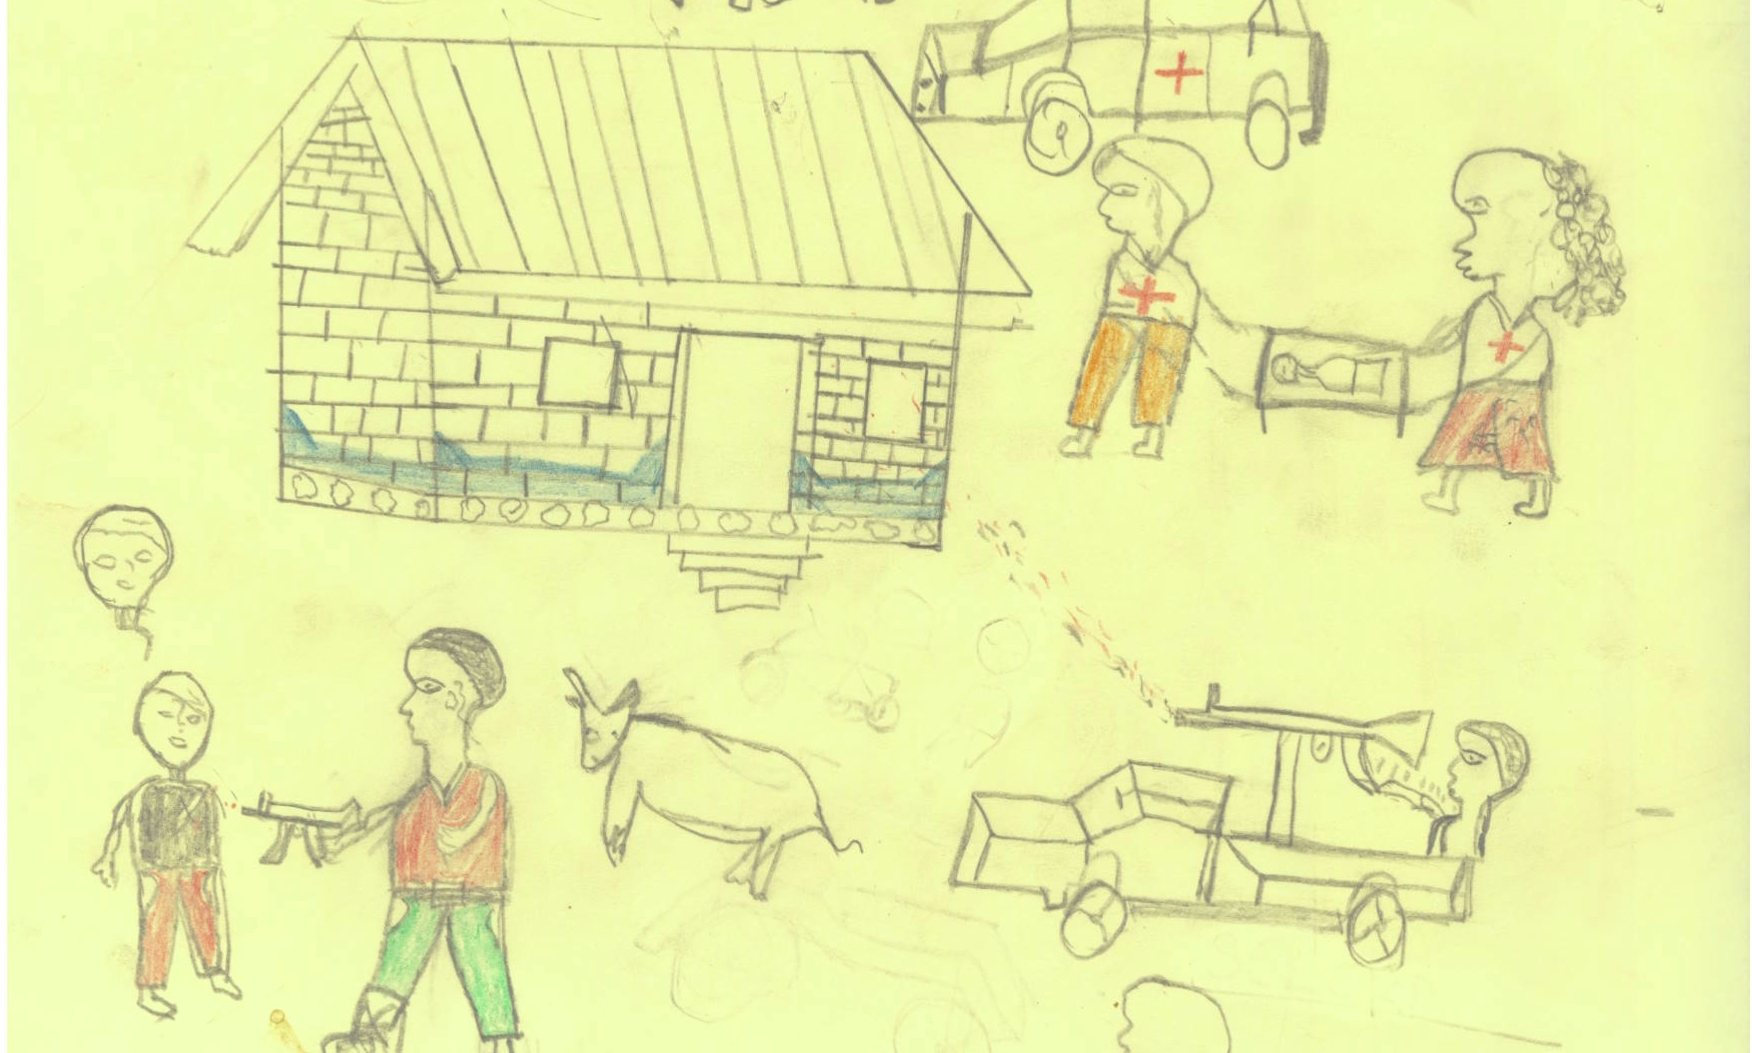 The drawings of children in Chi;d Friendly Spacses in Central African Republic shows the trauma and violence they have witnessed - but they are also helping children heal, and in some cases helping with reunification.